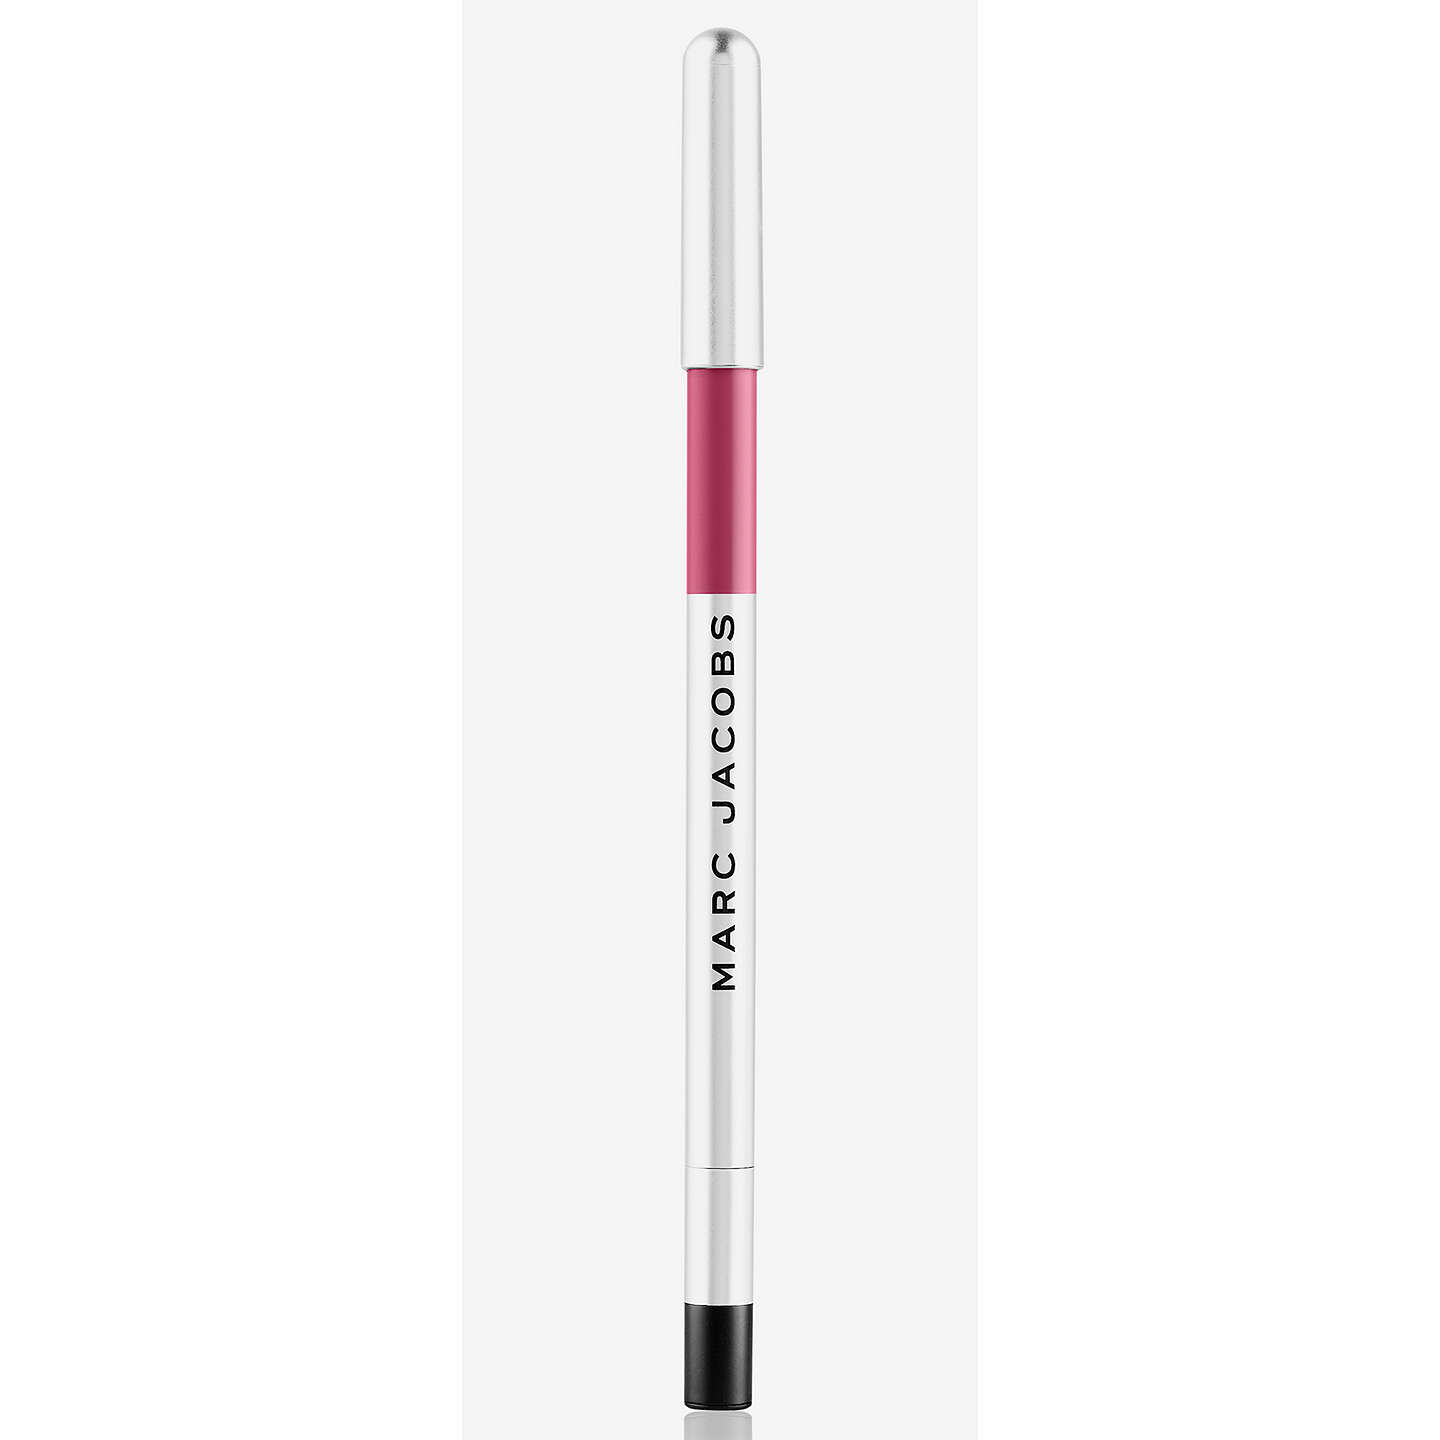 BuyMarc Jacobs Matte Highliner Gel Eye Crayon, Popular Online at johnlewis.com